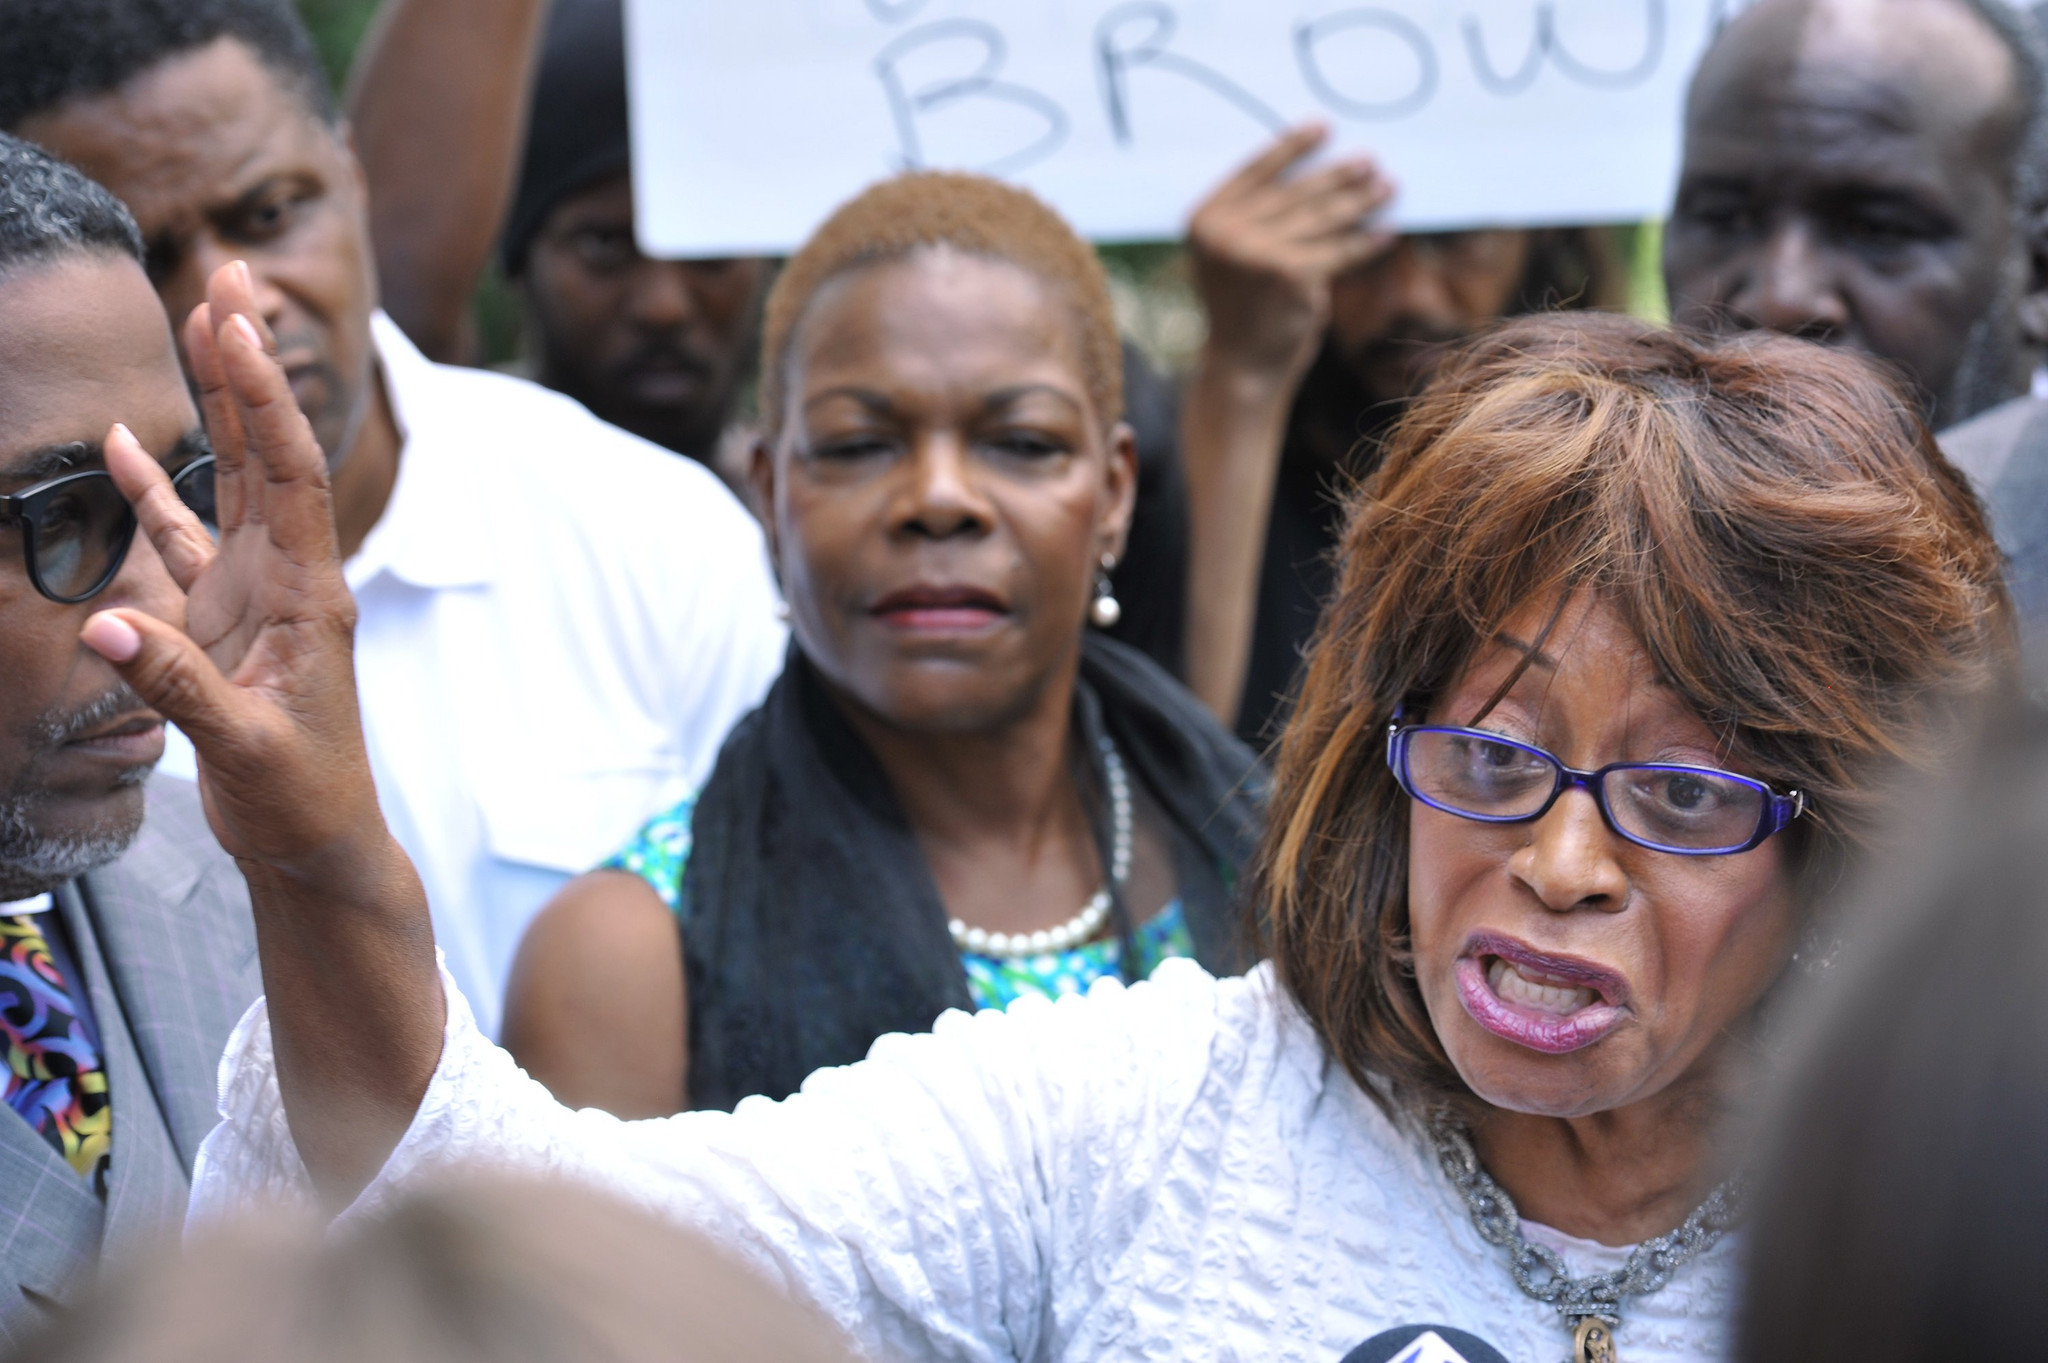 jacksonville bold for who will roll on corrine brown phil ammann 9 2016 11 13 am 9 2016